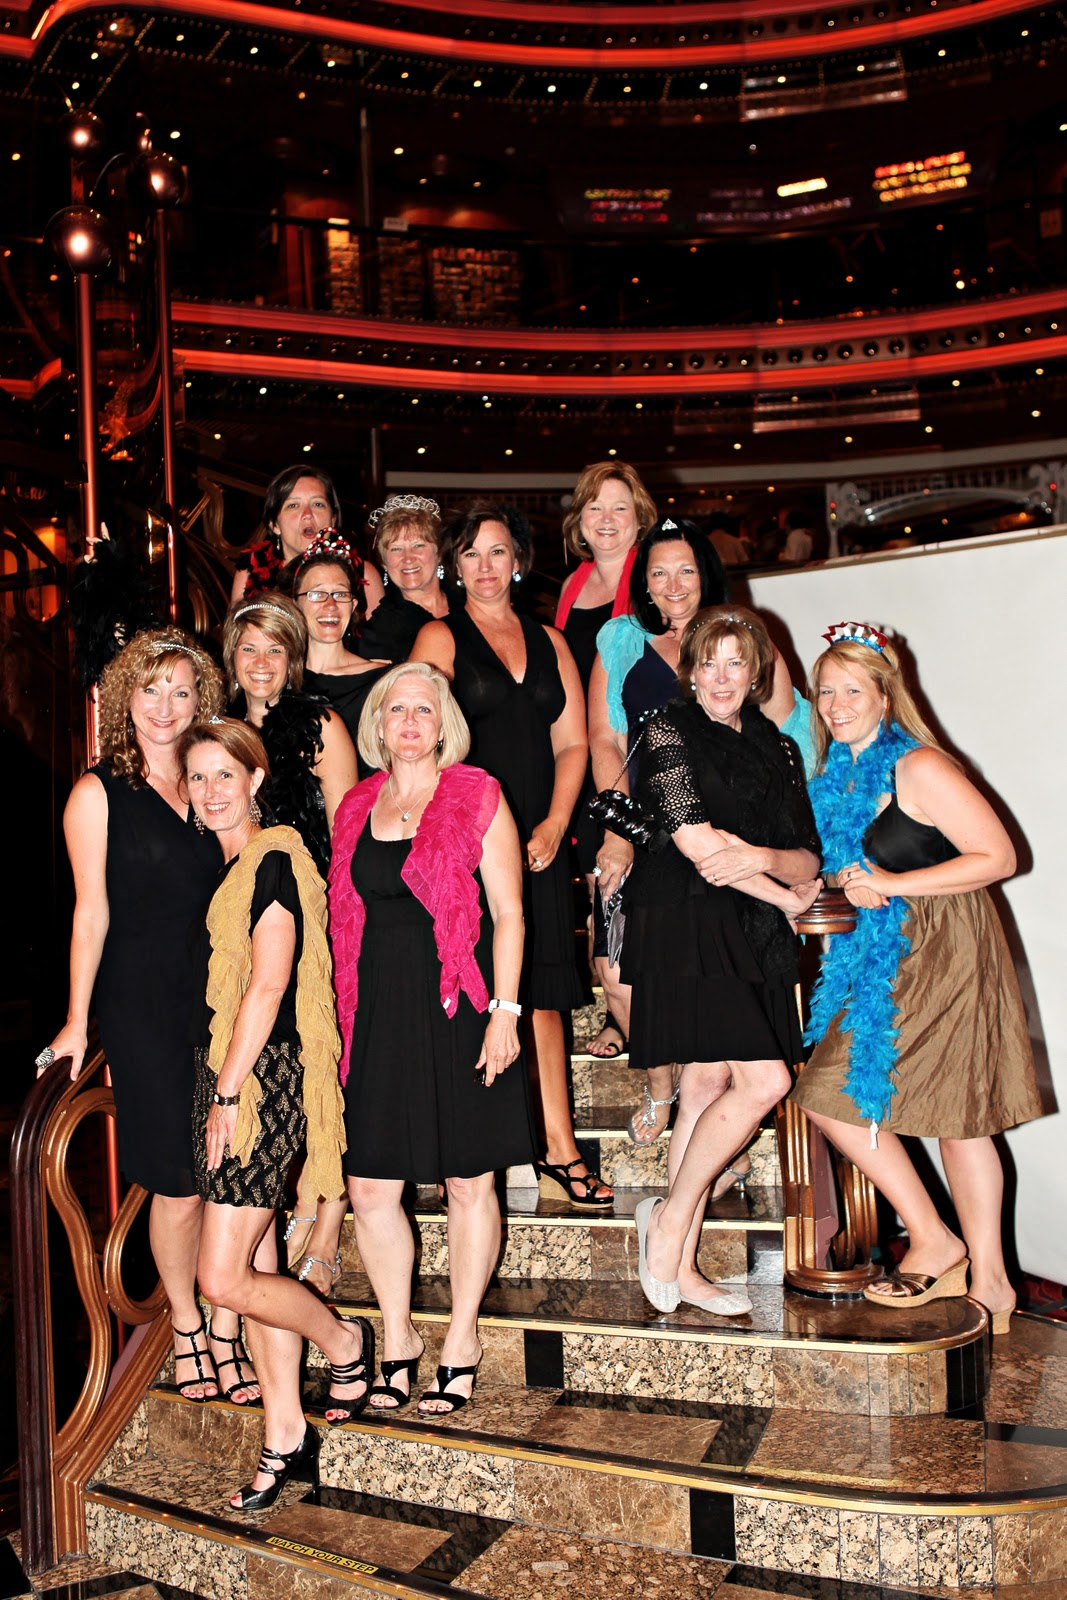 Carnival Cruise Dinner Wear Detlandcom - What to wear on a cruise ship dinner